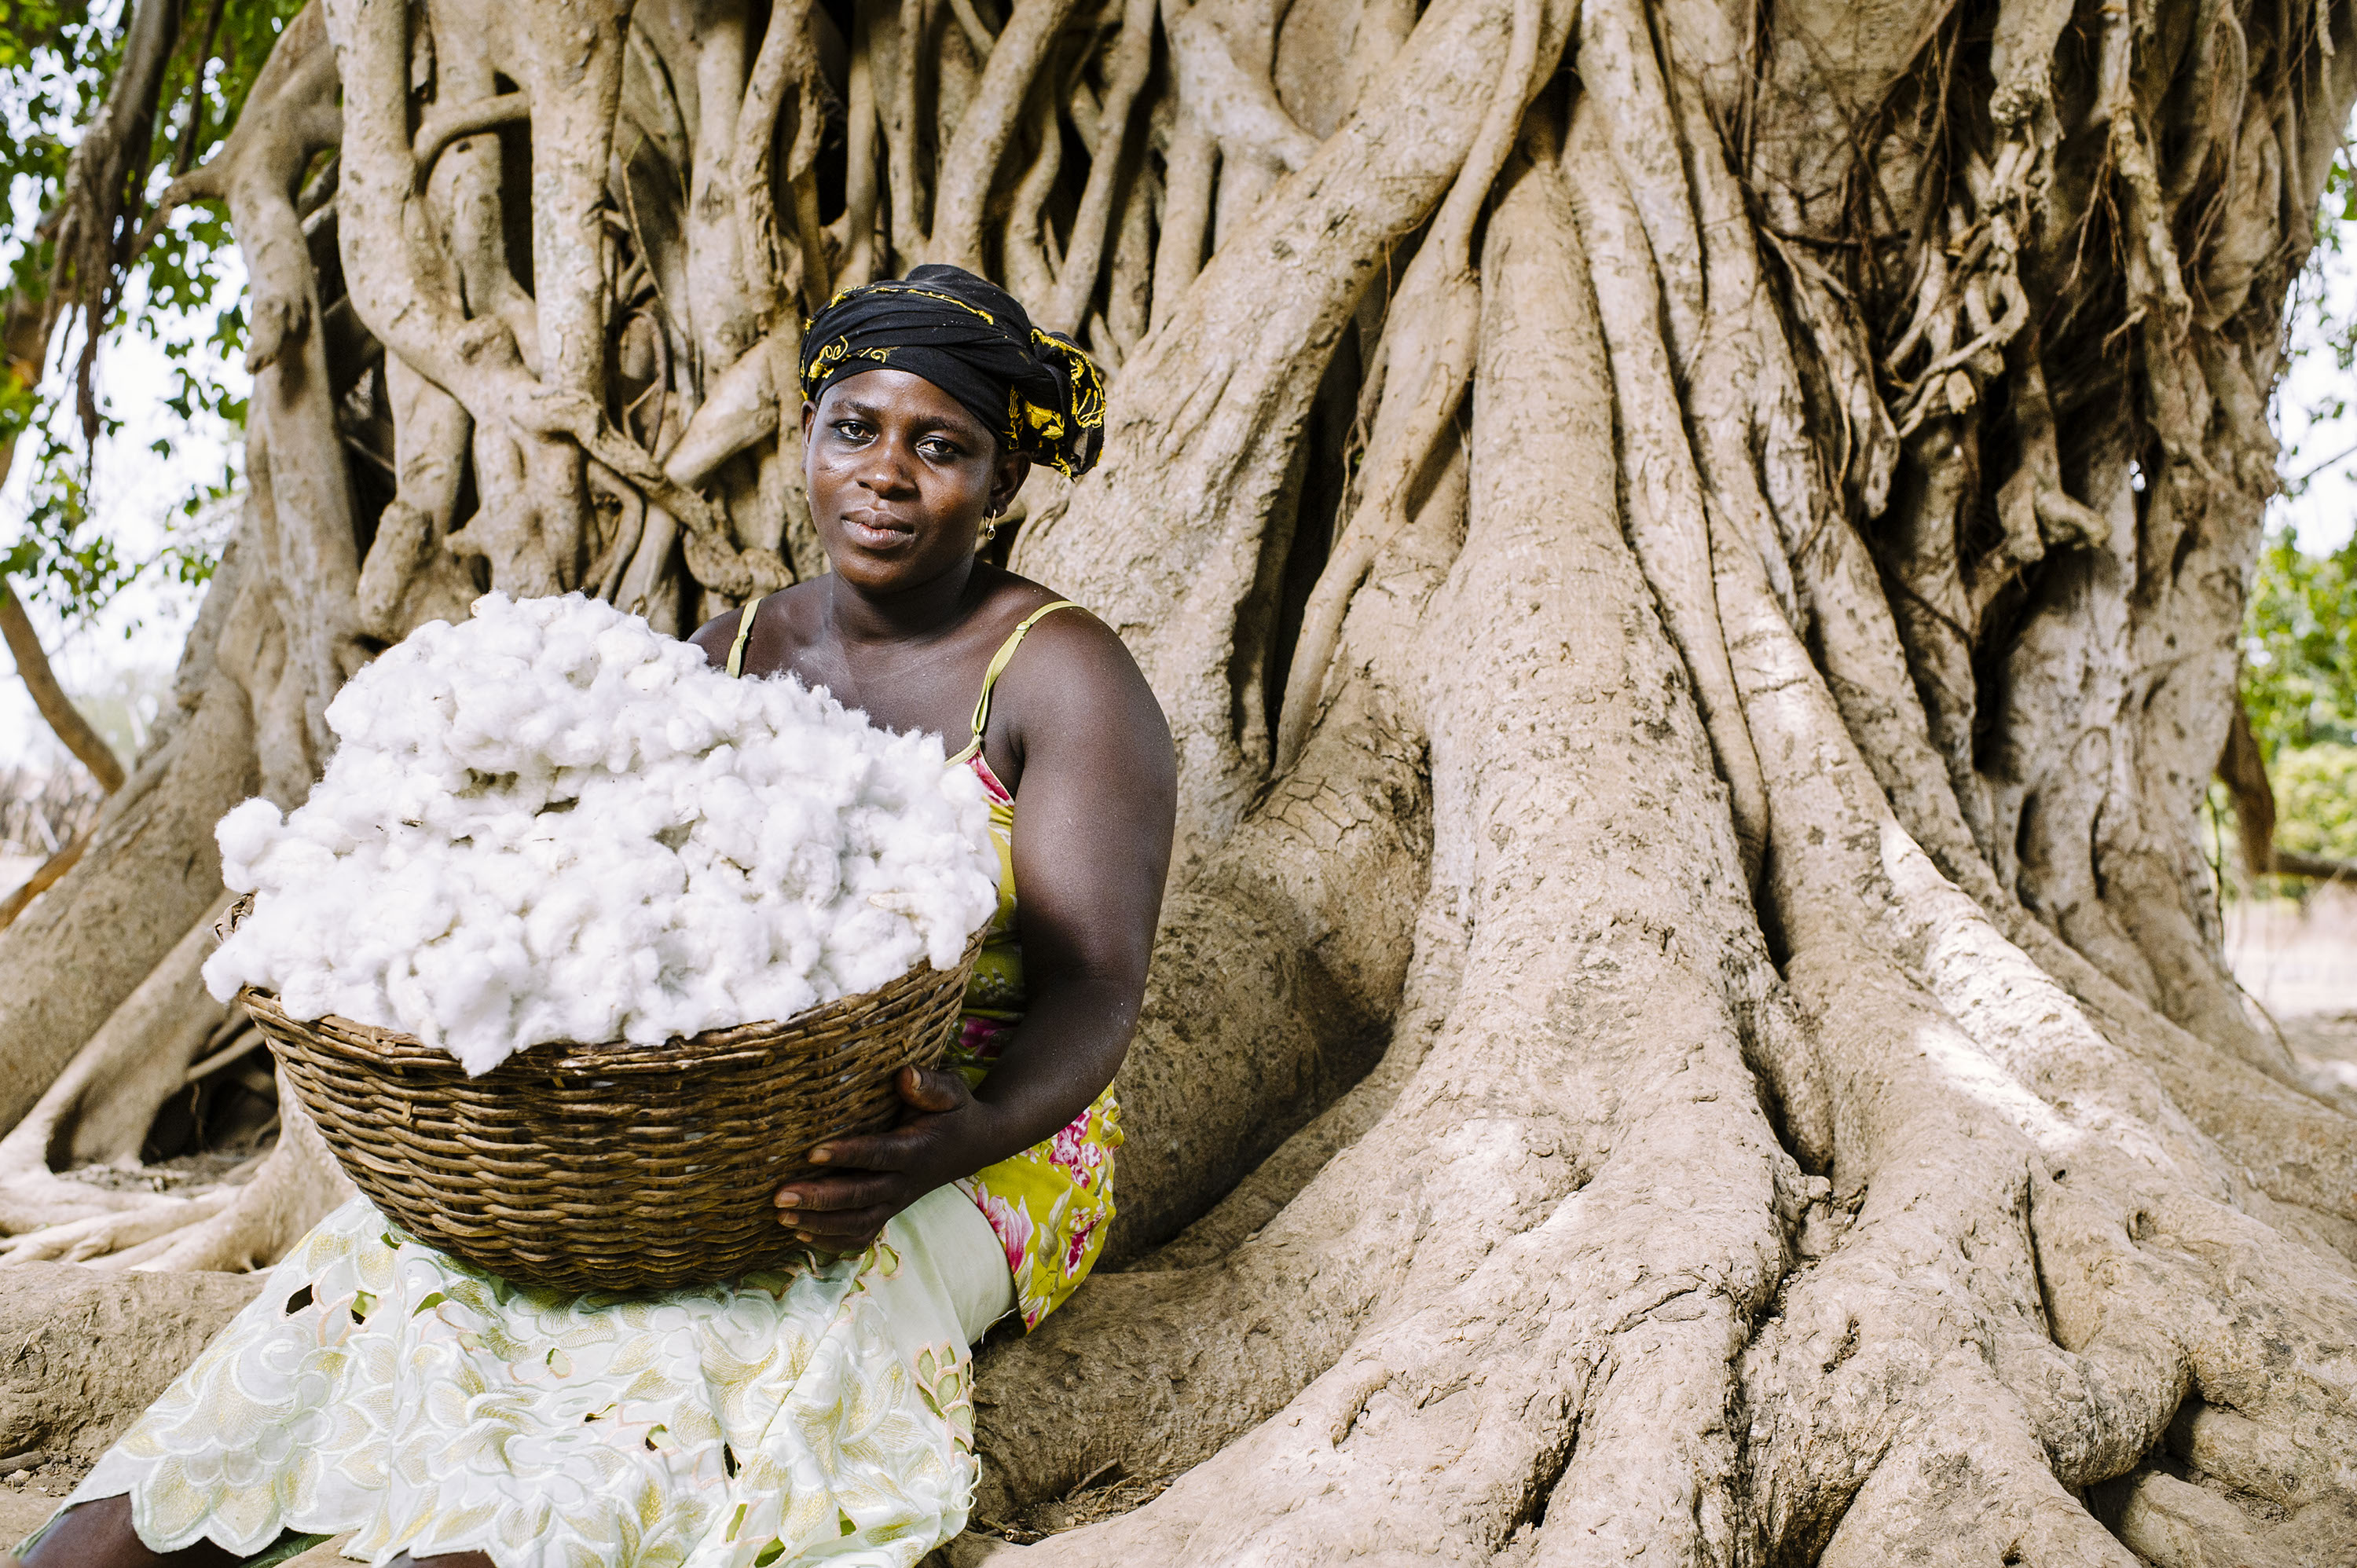 Dadjan Wassinatou, 34, holds a basket of freshly harvested cotton in the village of Zorro, Burkina Faso. Photo: CIFOR via Flickr (CC BY-NC).